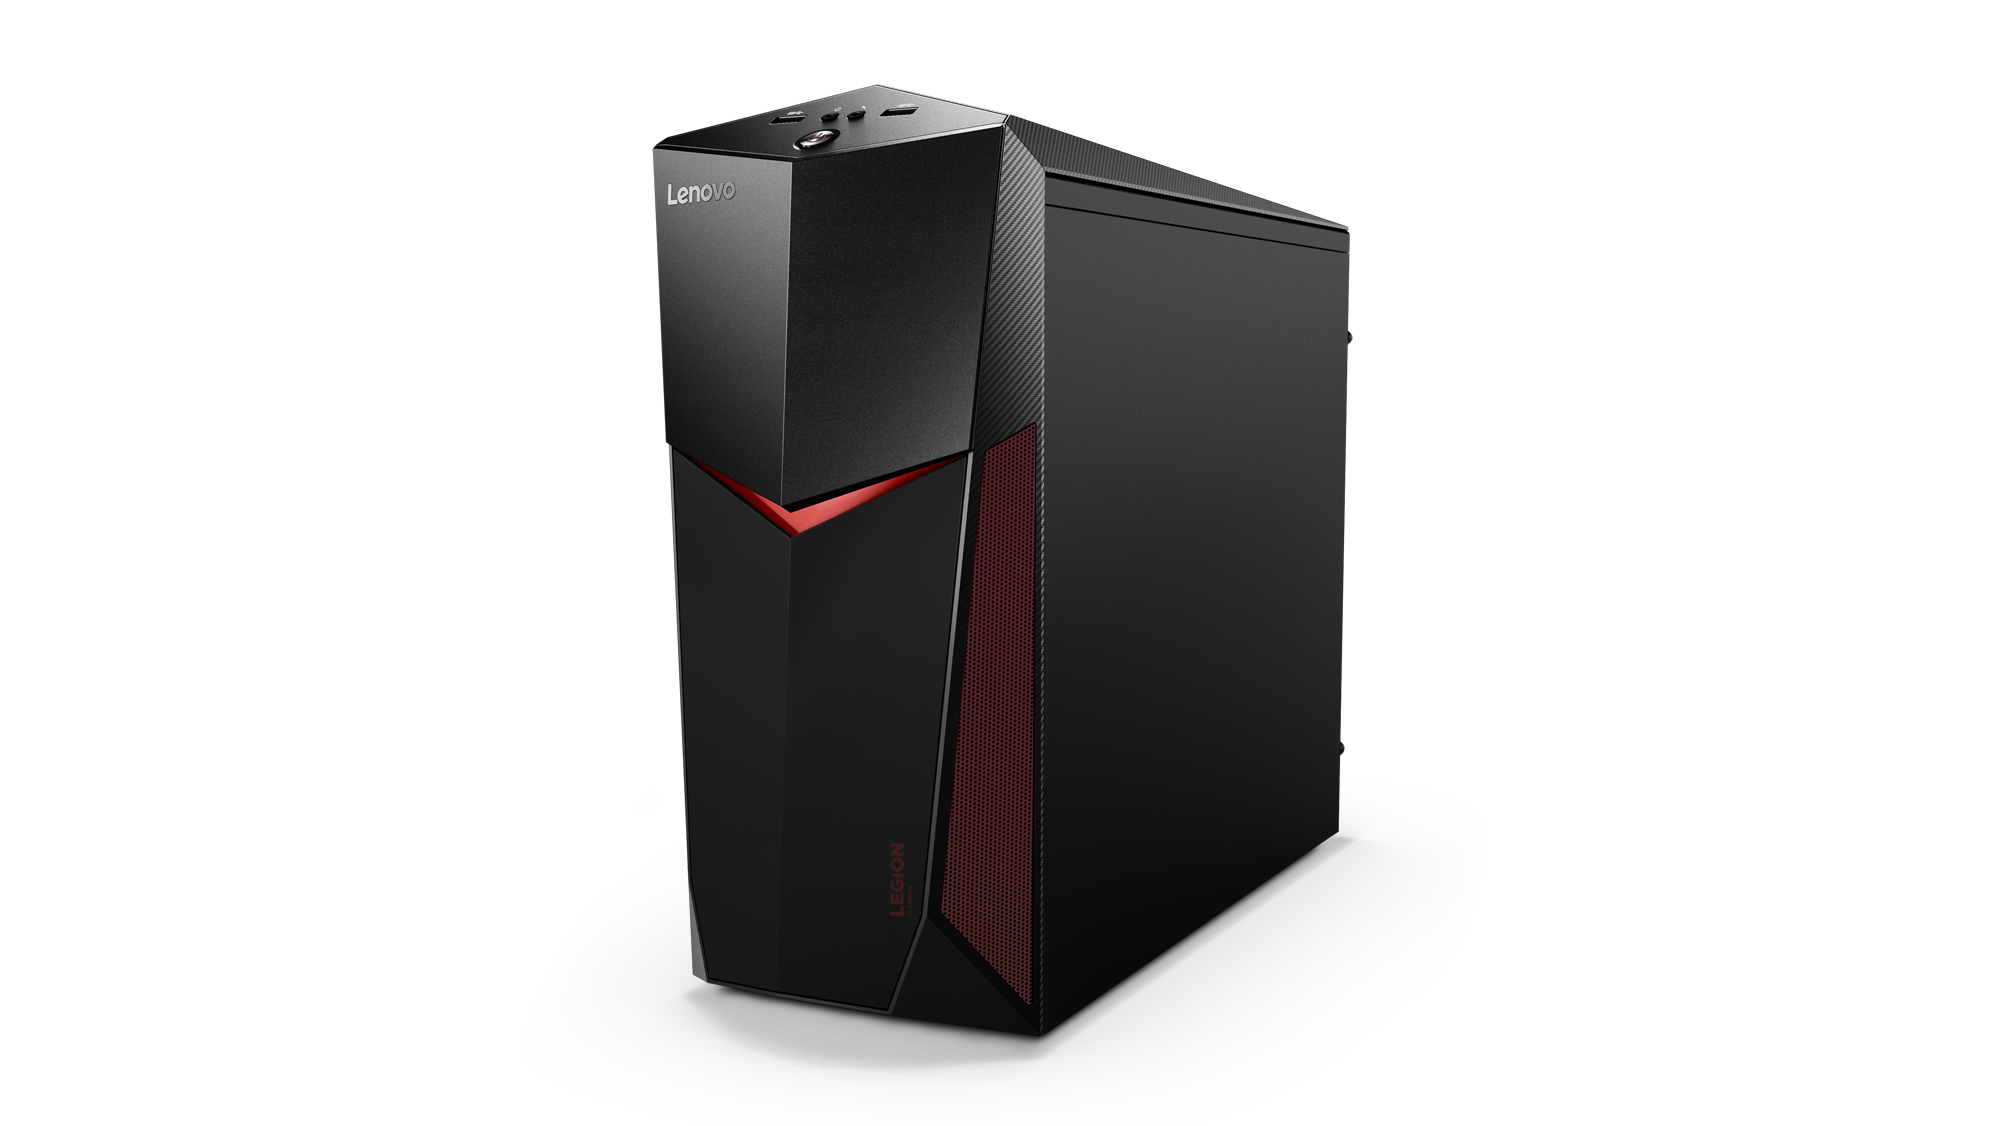 Lenovo Legion Y520T-25IKL ES i5-8400 4,00GHz/16GB/SSD 256GB+1TB HDD/GeForce 3GB/DVD-RW/TWR/36m ON-SITE/WIN10 90JB003JMK